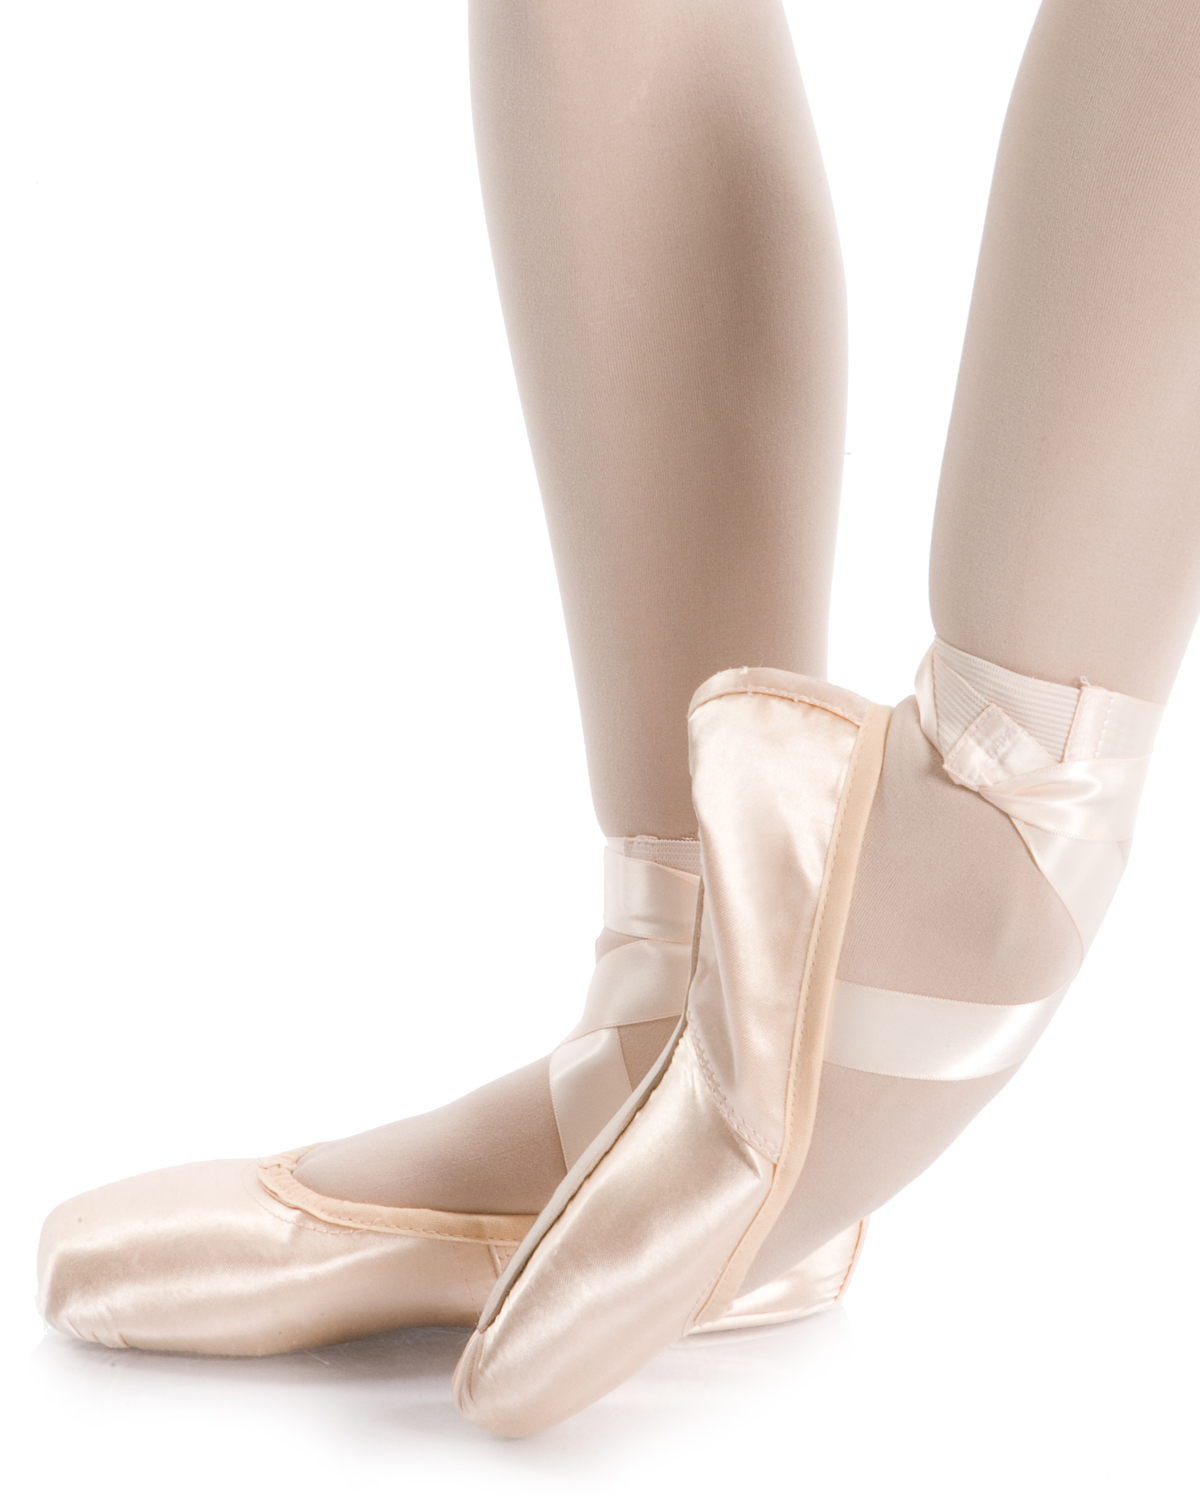 Where To Buy Grishko Pointe Shoes In Chicago